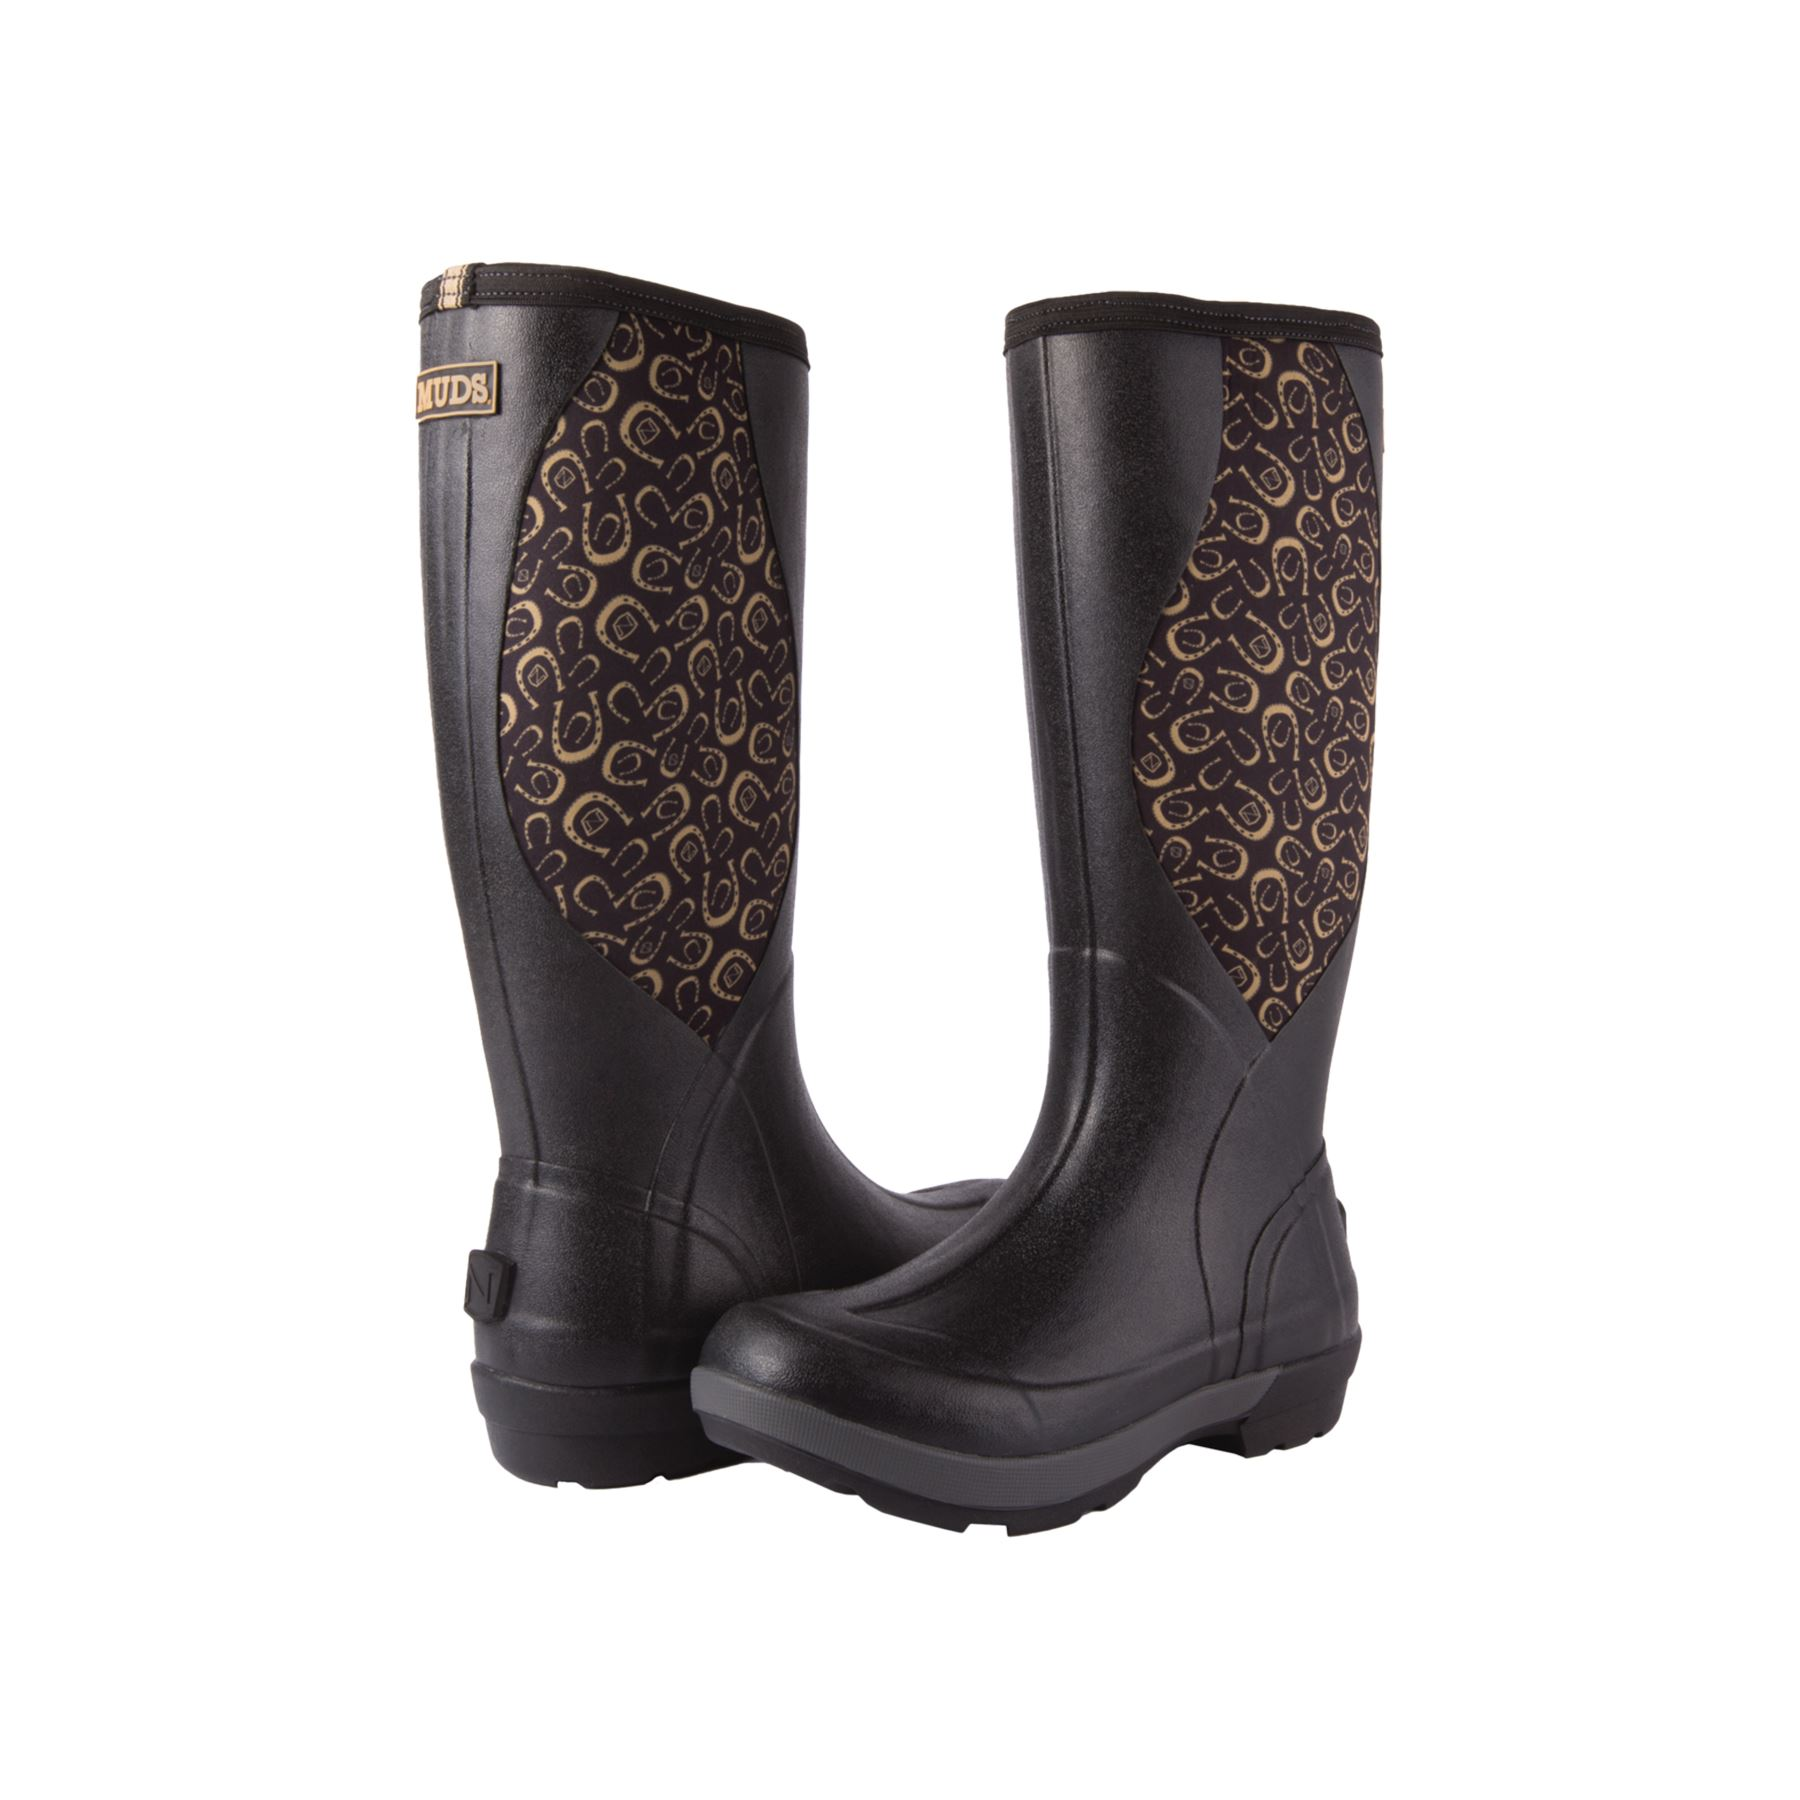 Noble Outfitters Ladies MUDS Stay Cool High Boots Gold